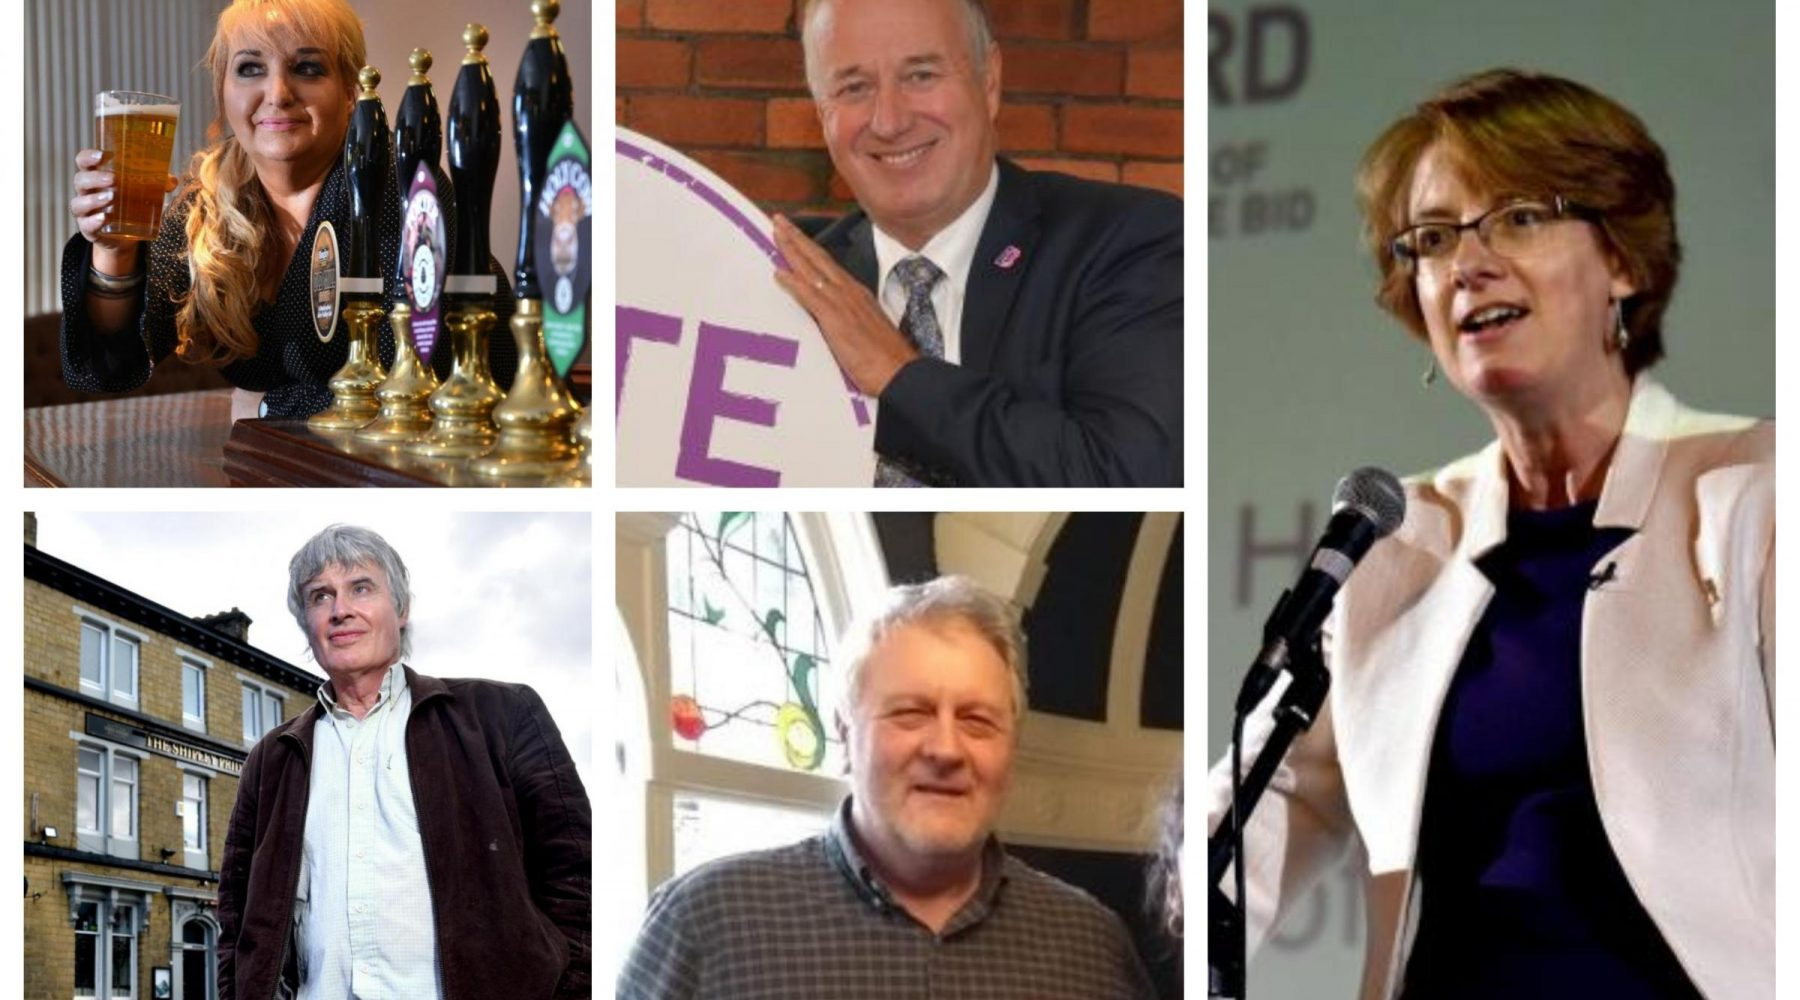 Council and business figures from Bradford react to…